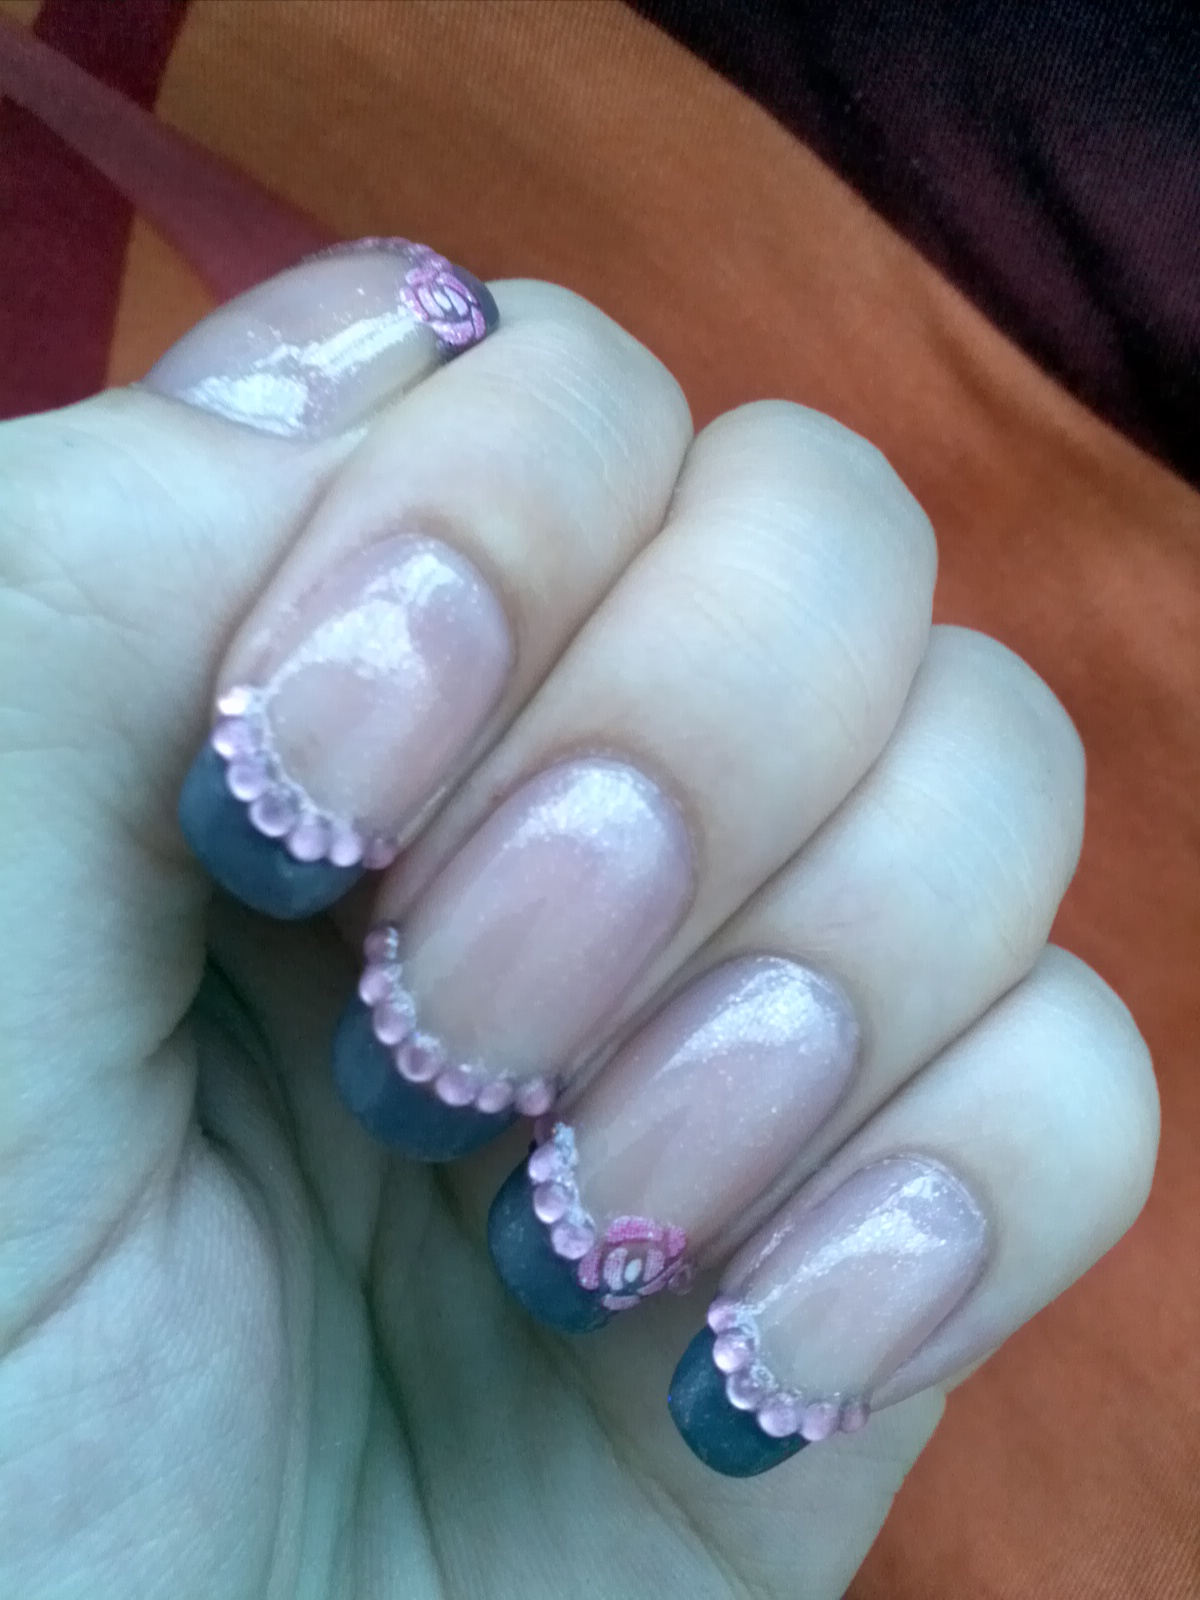 Juicy Nails: Nail Art: French Tip with Rhinestones and Rose Nail Sticker